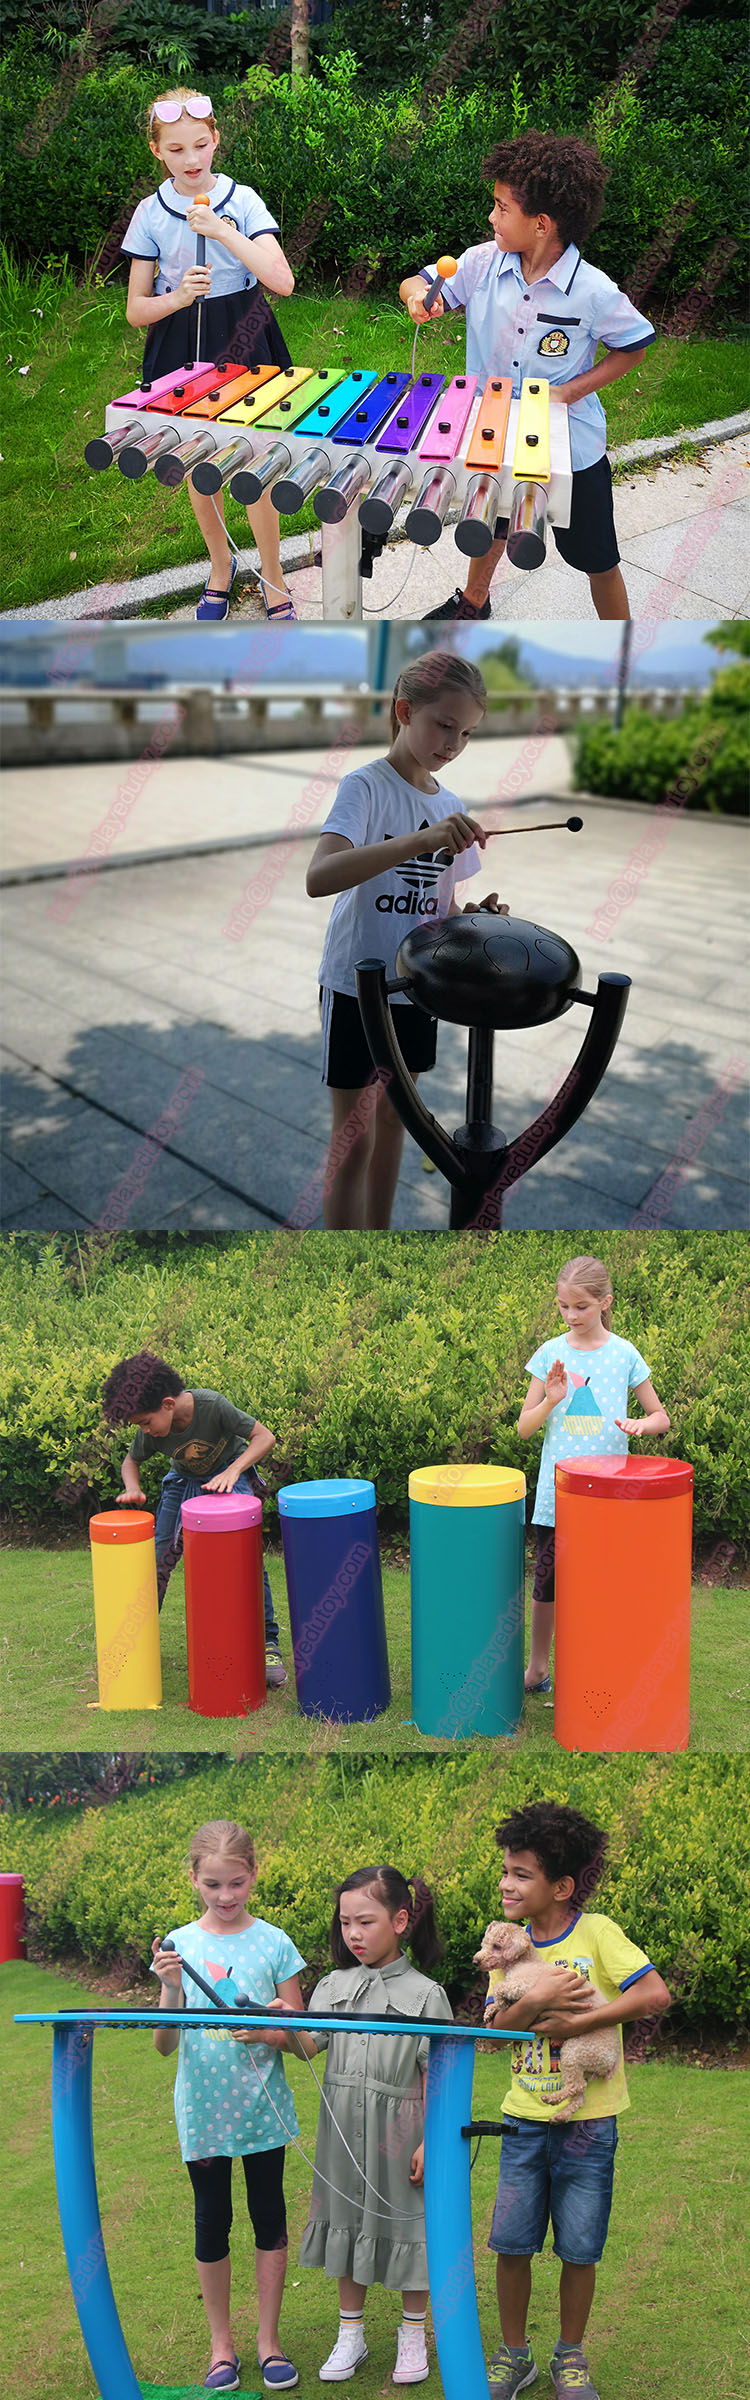 Children playground outdoor five color big steel tube pentatonic scale drum music play toy set.jpg